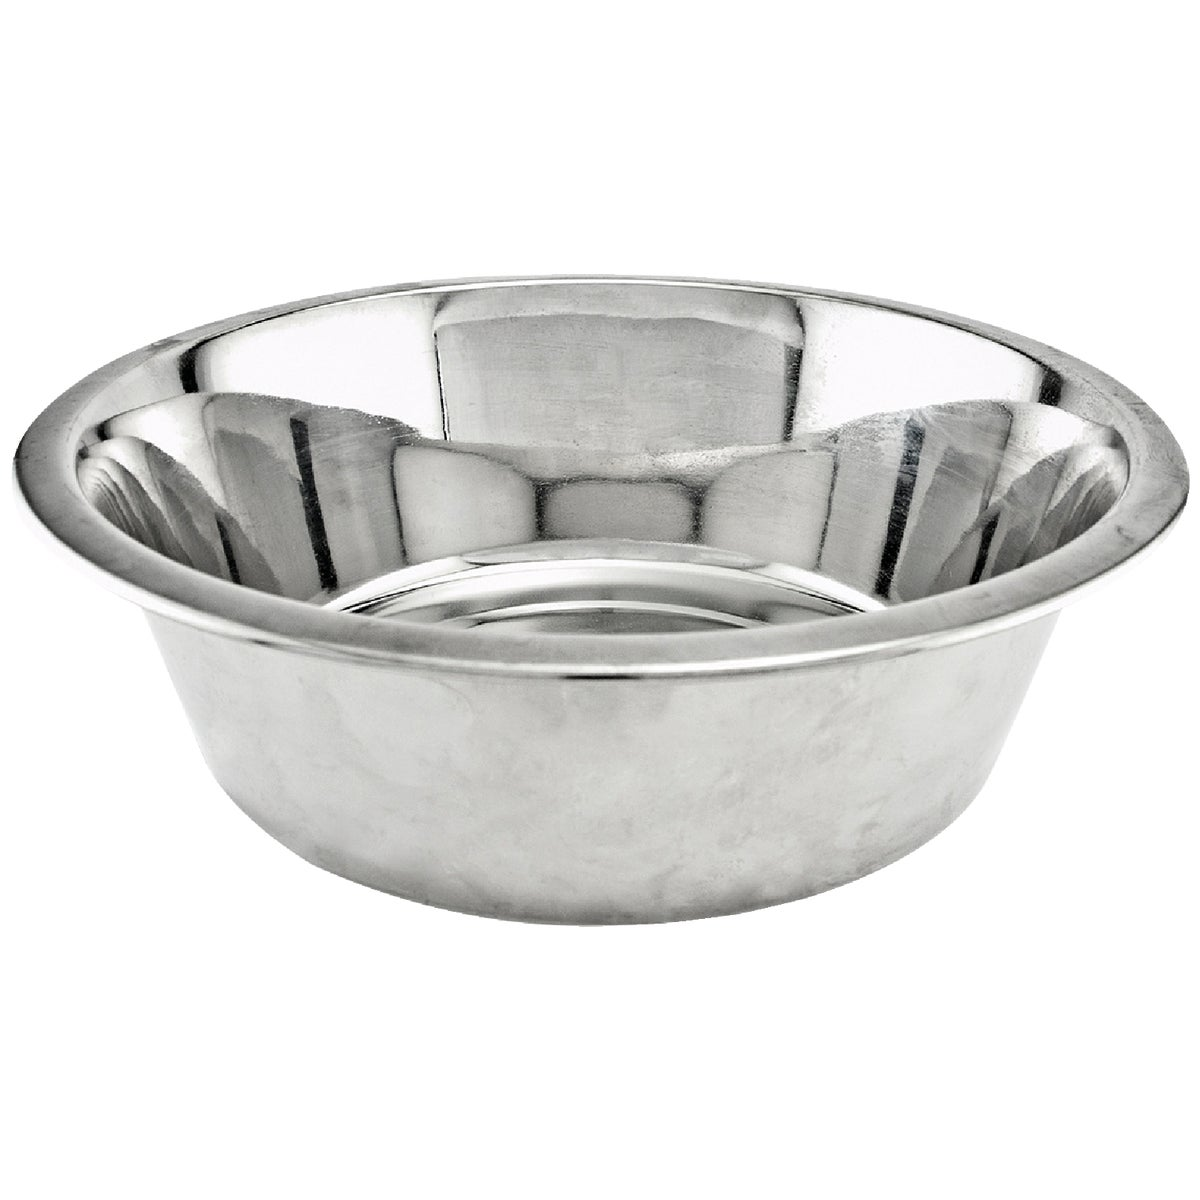 2QT ECONOMY SS PET BOWL - 15064 by Westminster Pet